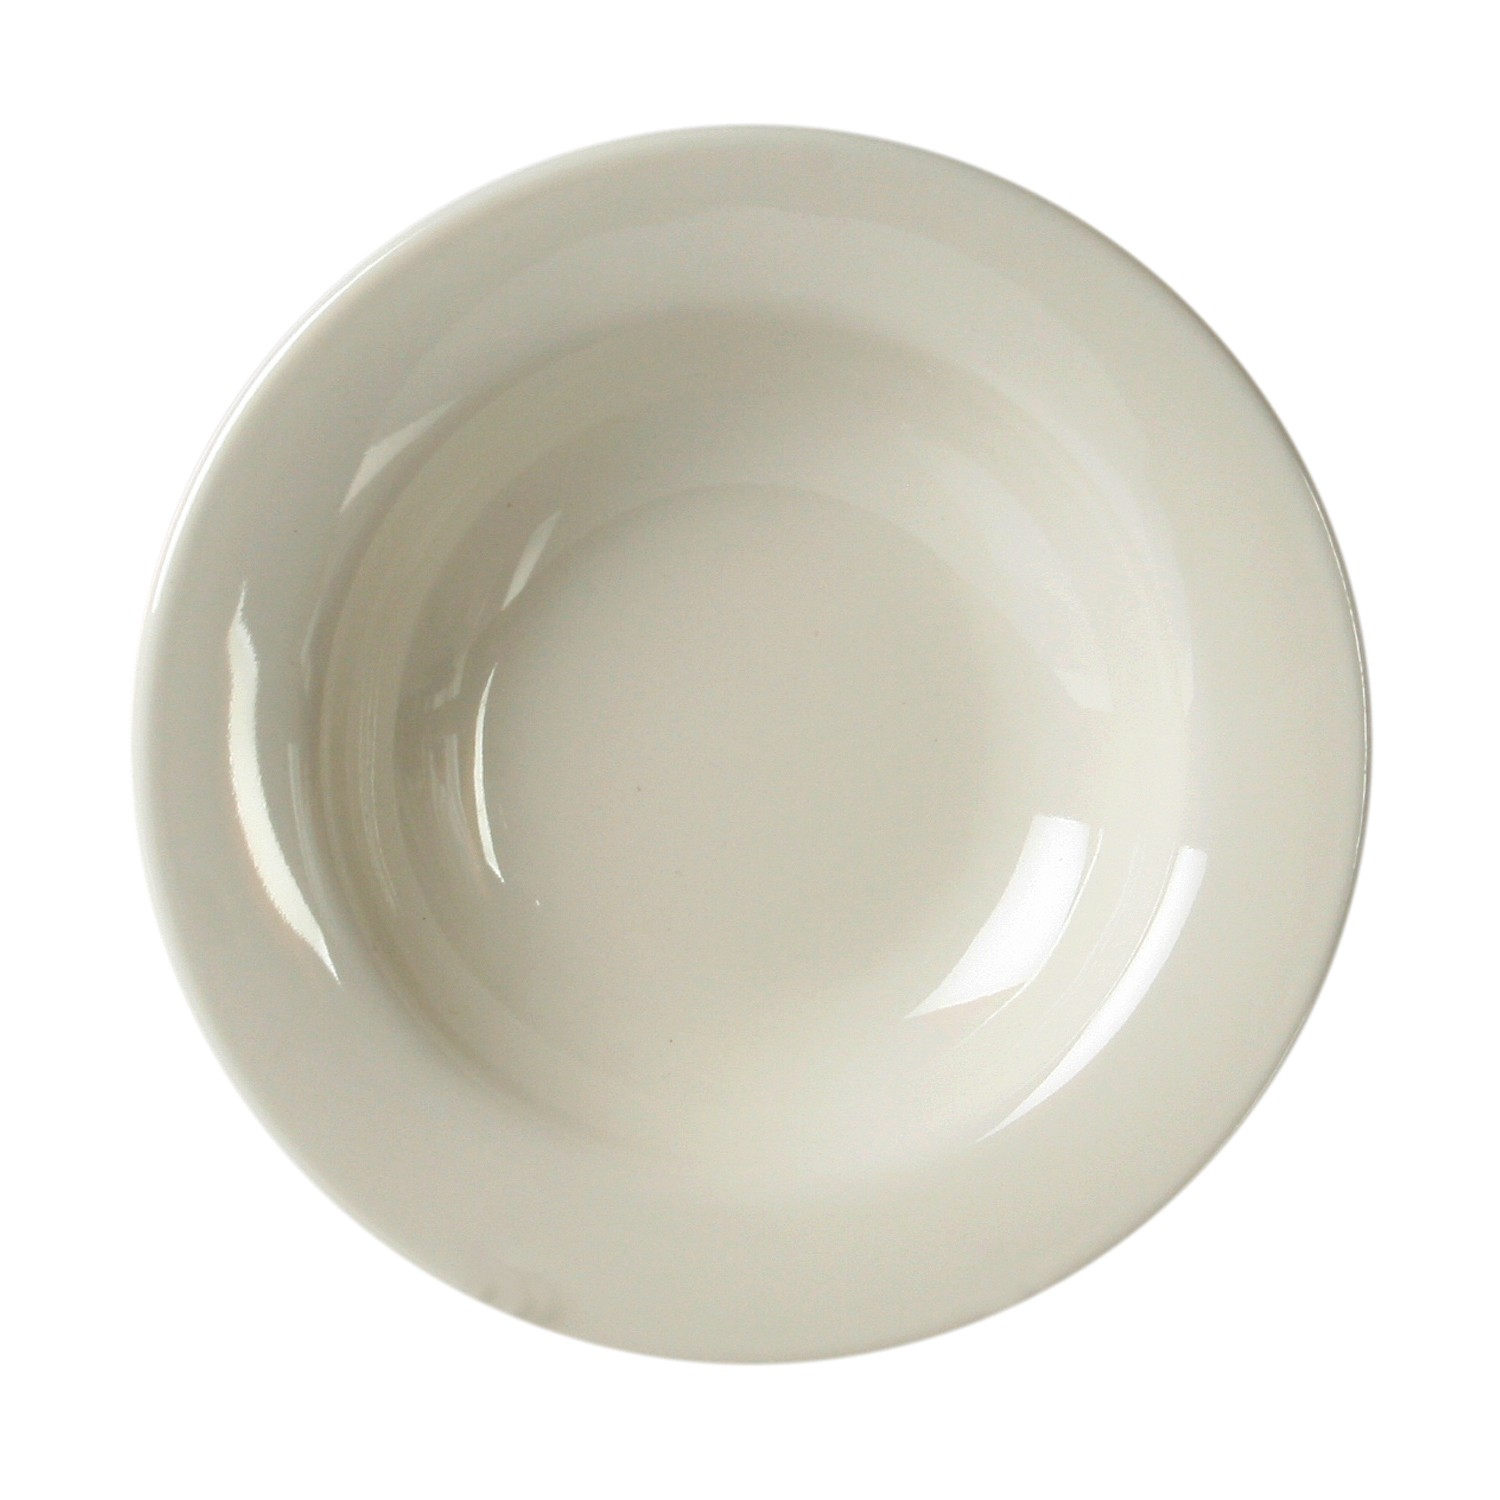 Thunder Group CR5077V Ivory Wide Rim Salad Bowl 8 oz. - 1 doz